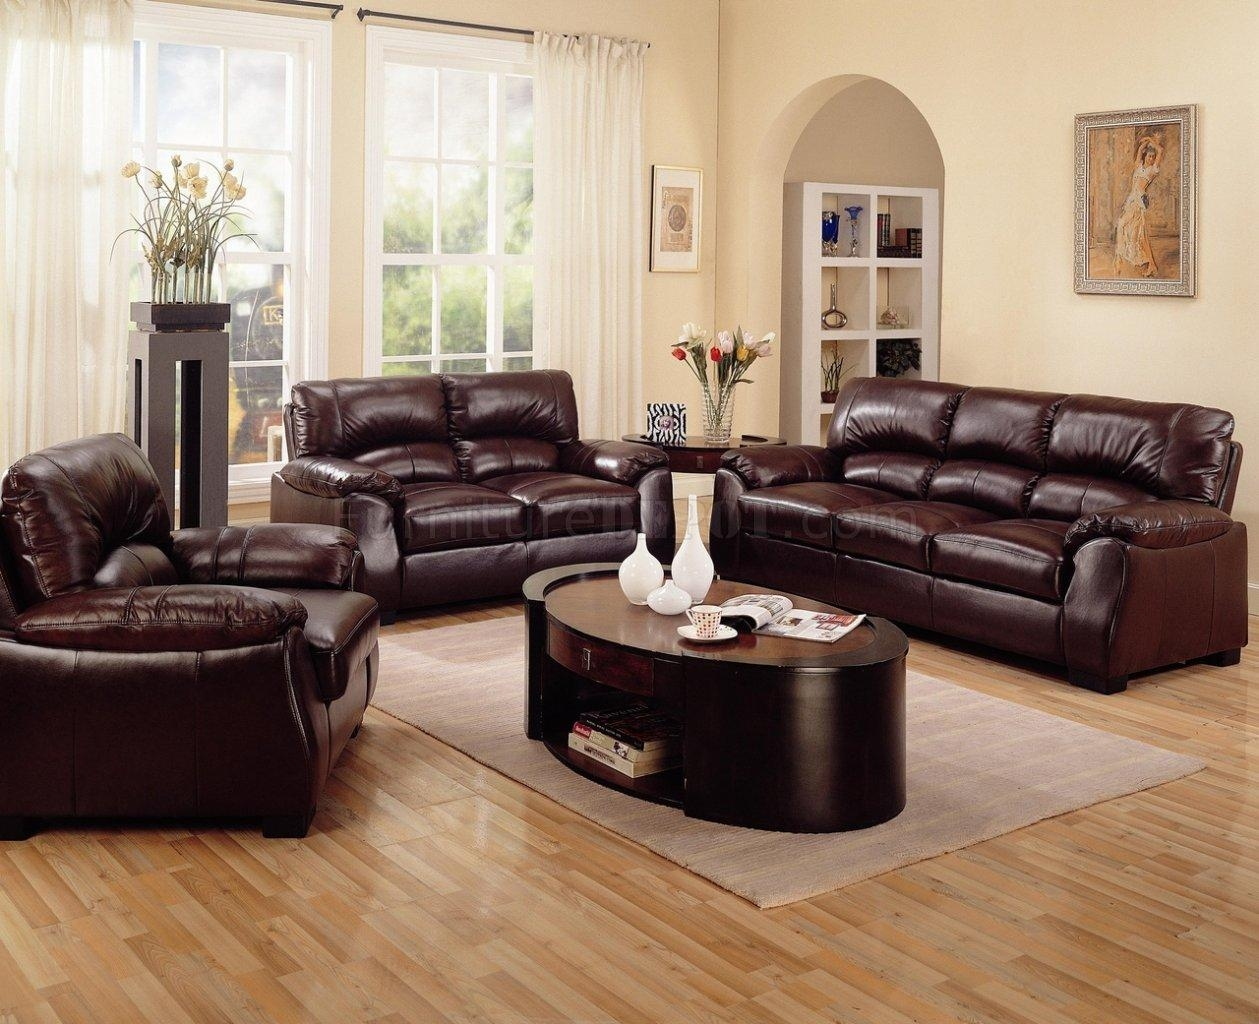 Contemporary Brown Leather Sofa 43 With Contemporary Brown Leather Intended For Contemporary Brown Leather Sofas (View 15 of 20)